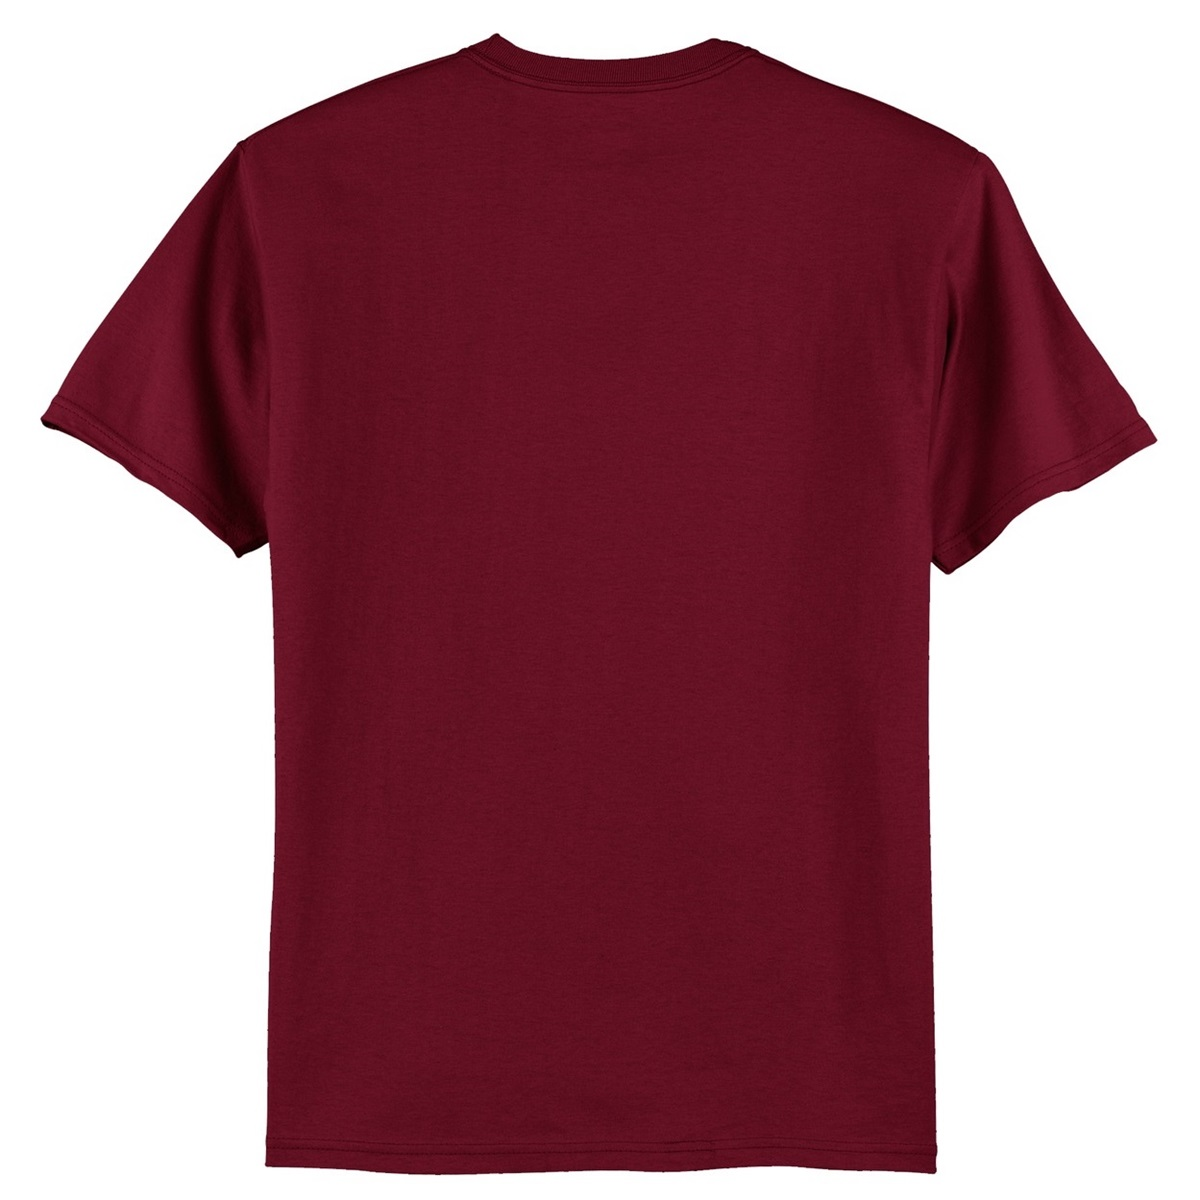 Hanes 5250 tagless cotton t shirt cardinal for Cardinal color t shirts